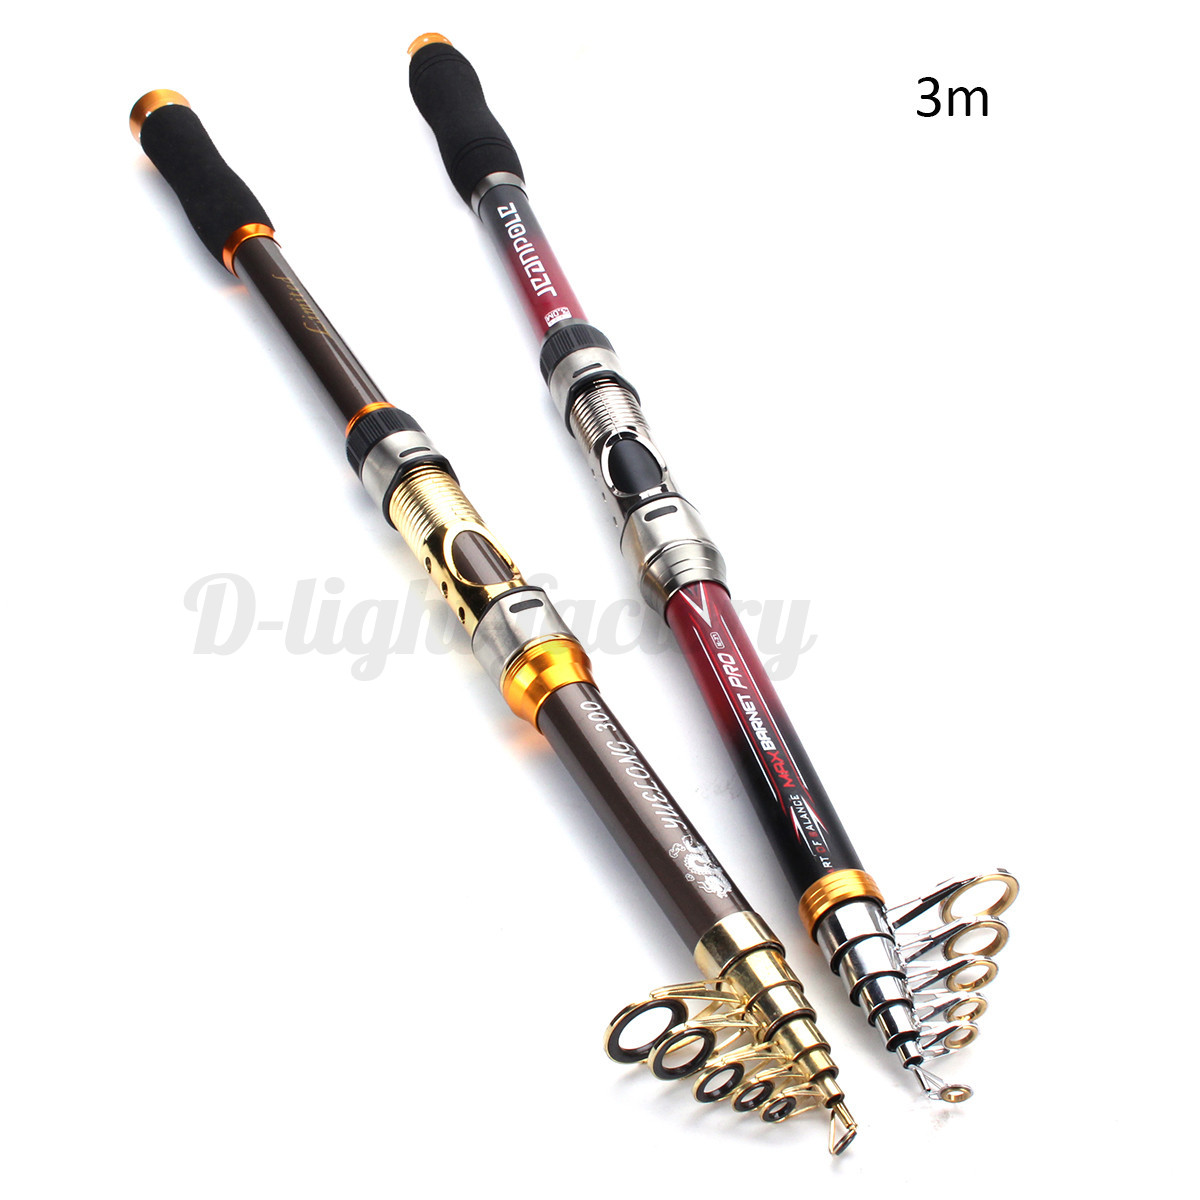 2 1 Super Strong Carbon Telescopic Spinning Pole